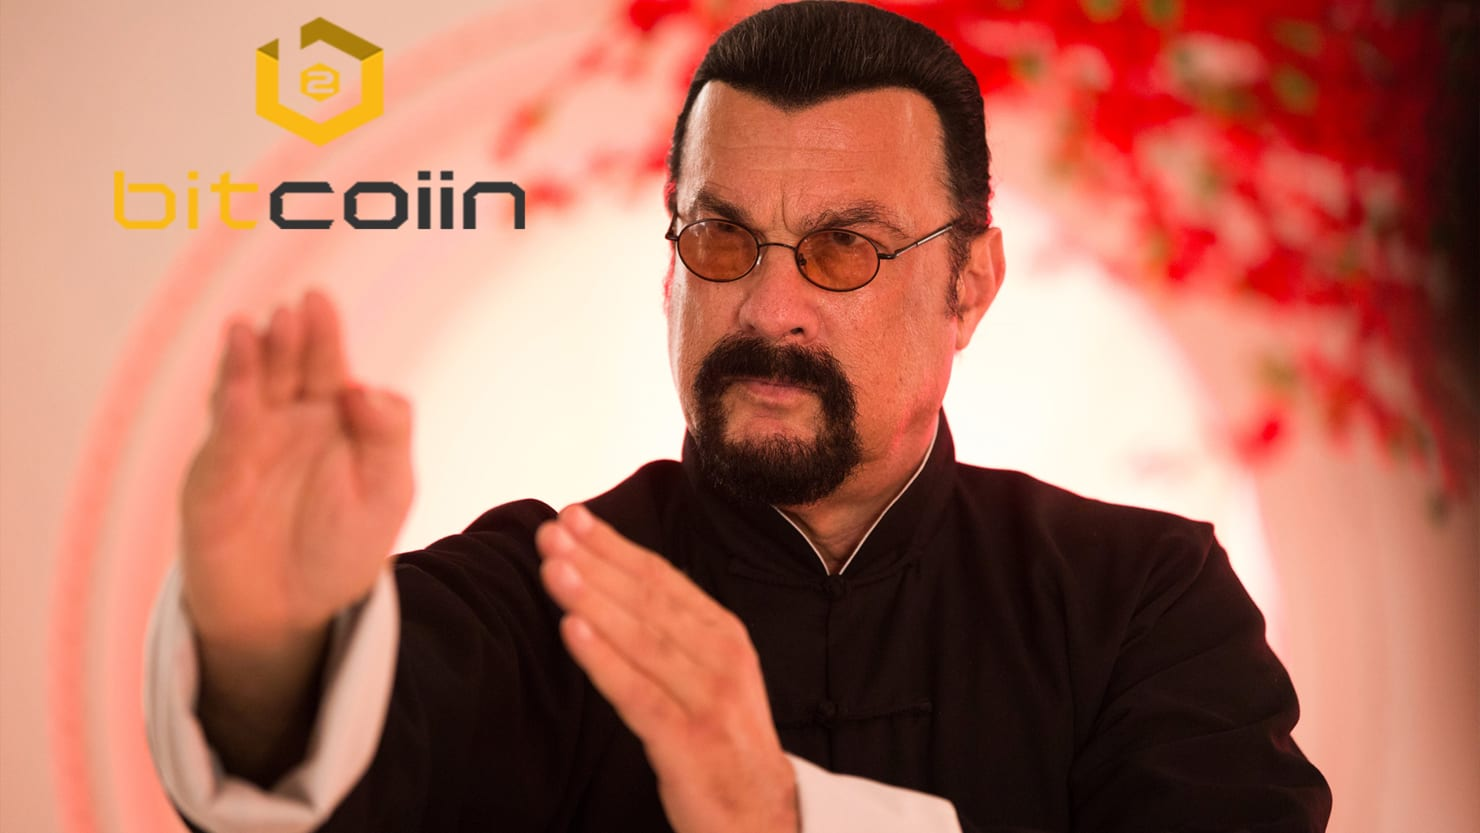 Steven Seagal, a Missing Internal most Peer, and an Alleged Crypto Fraud